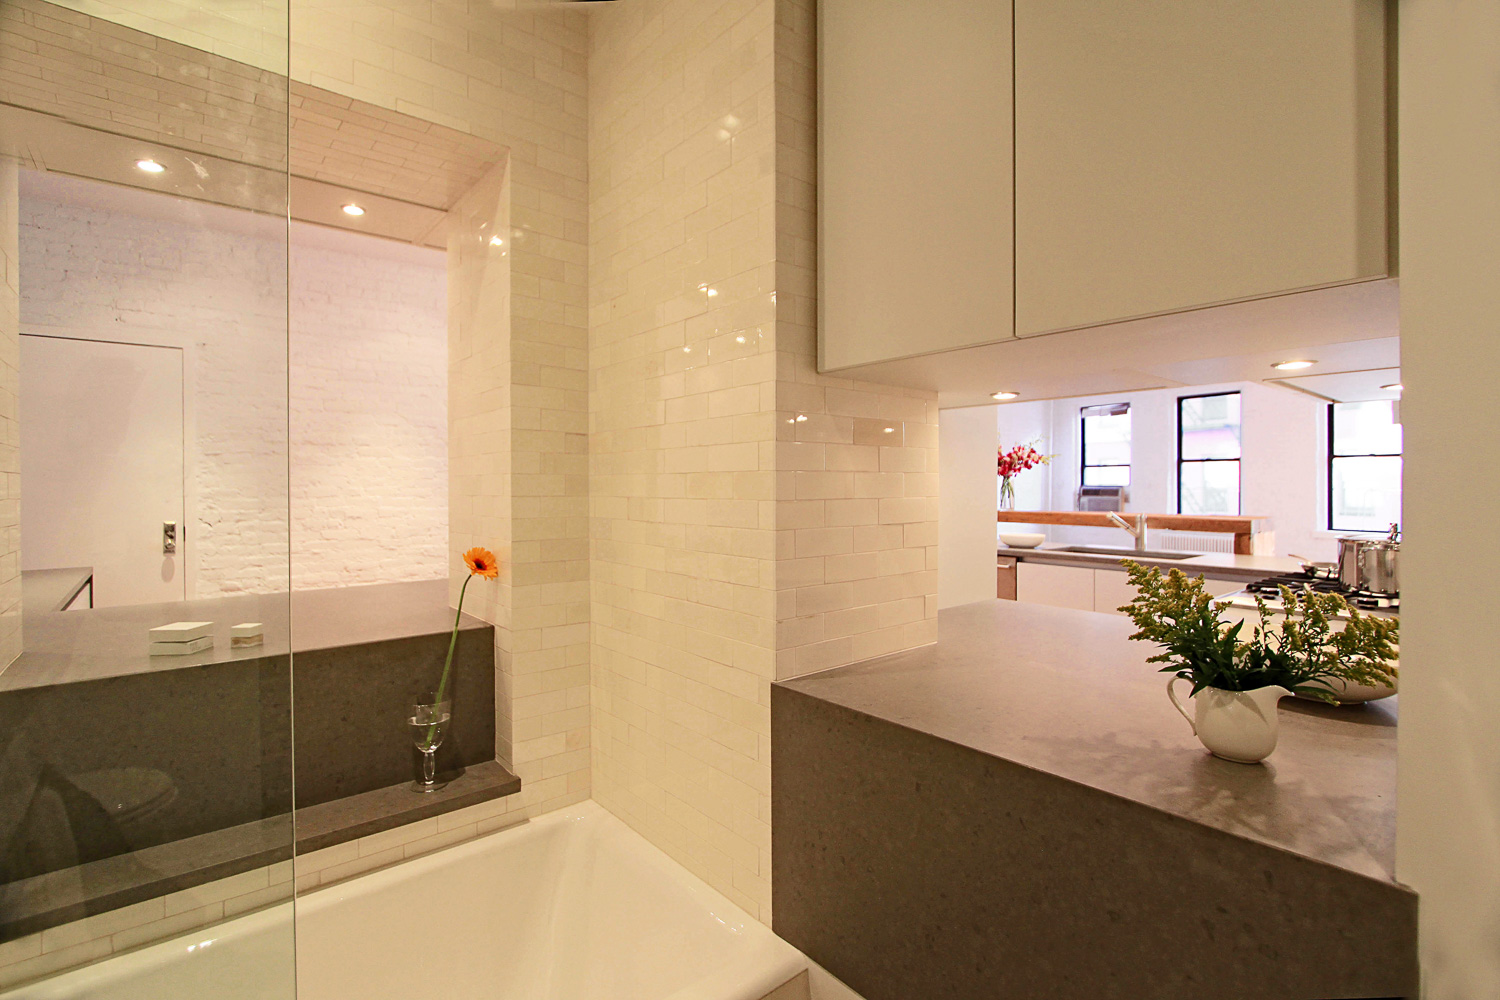 Bath View to Kitchen and Entry_11 Prince.jpg